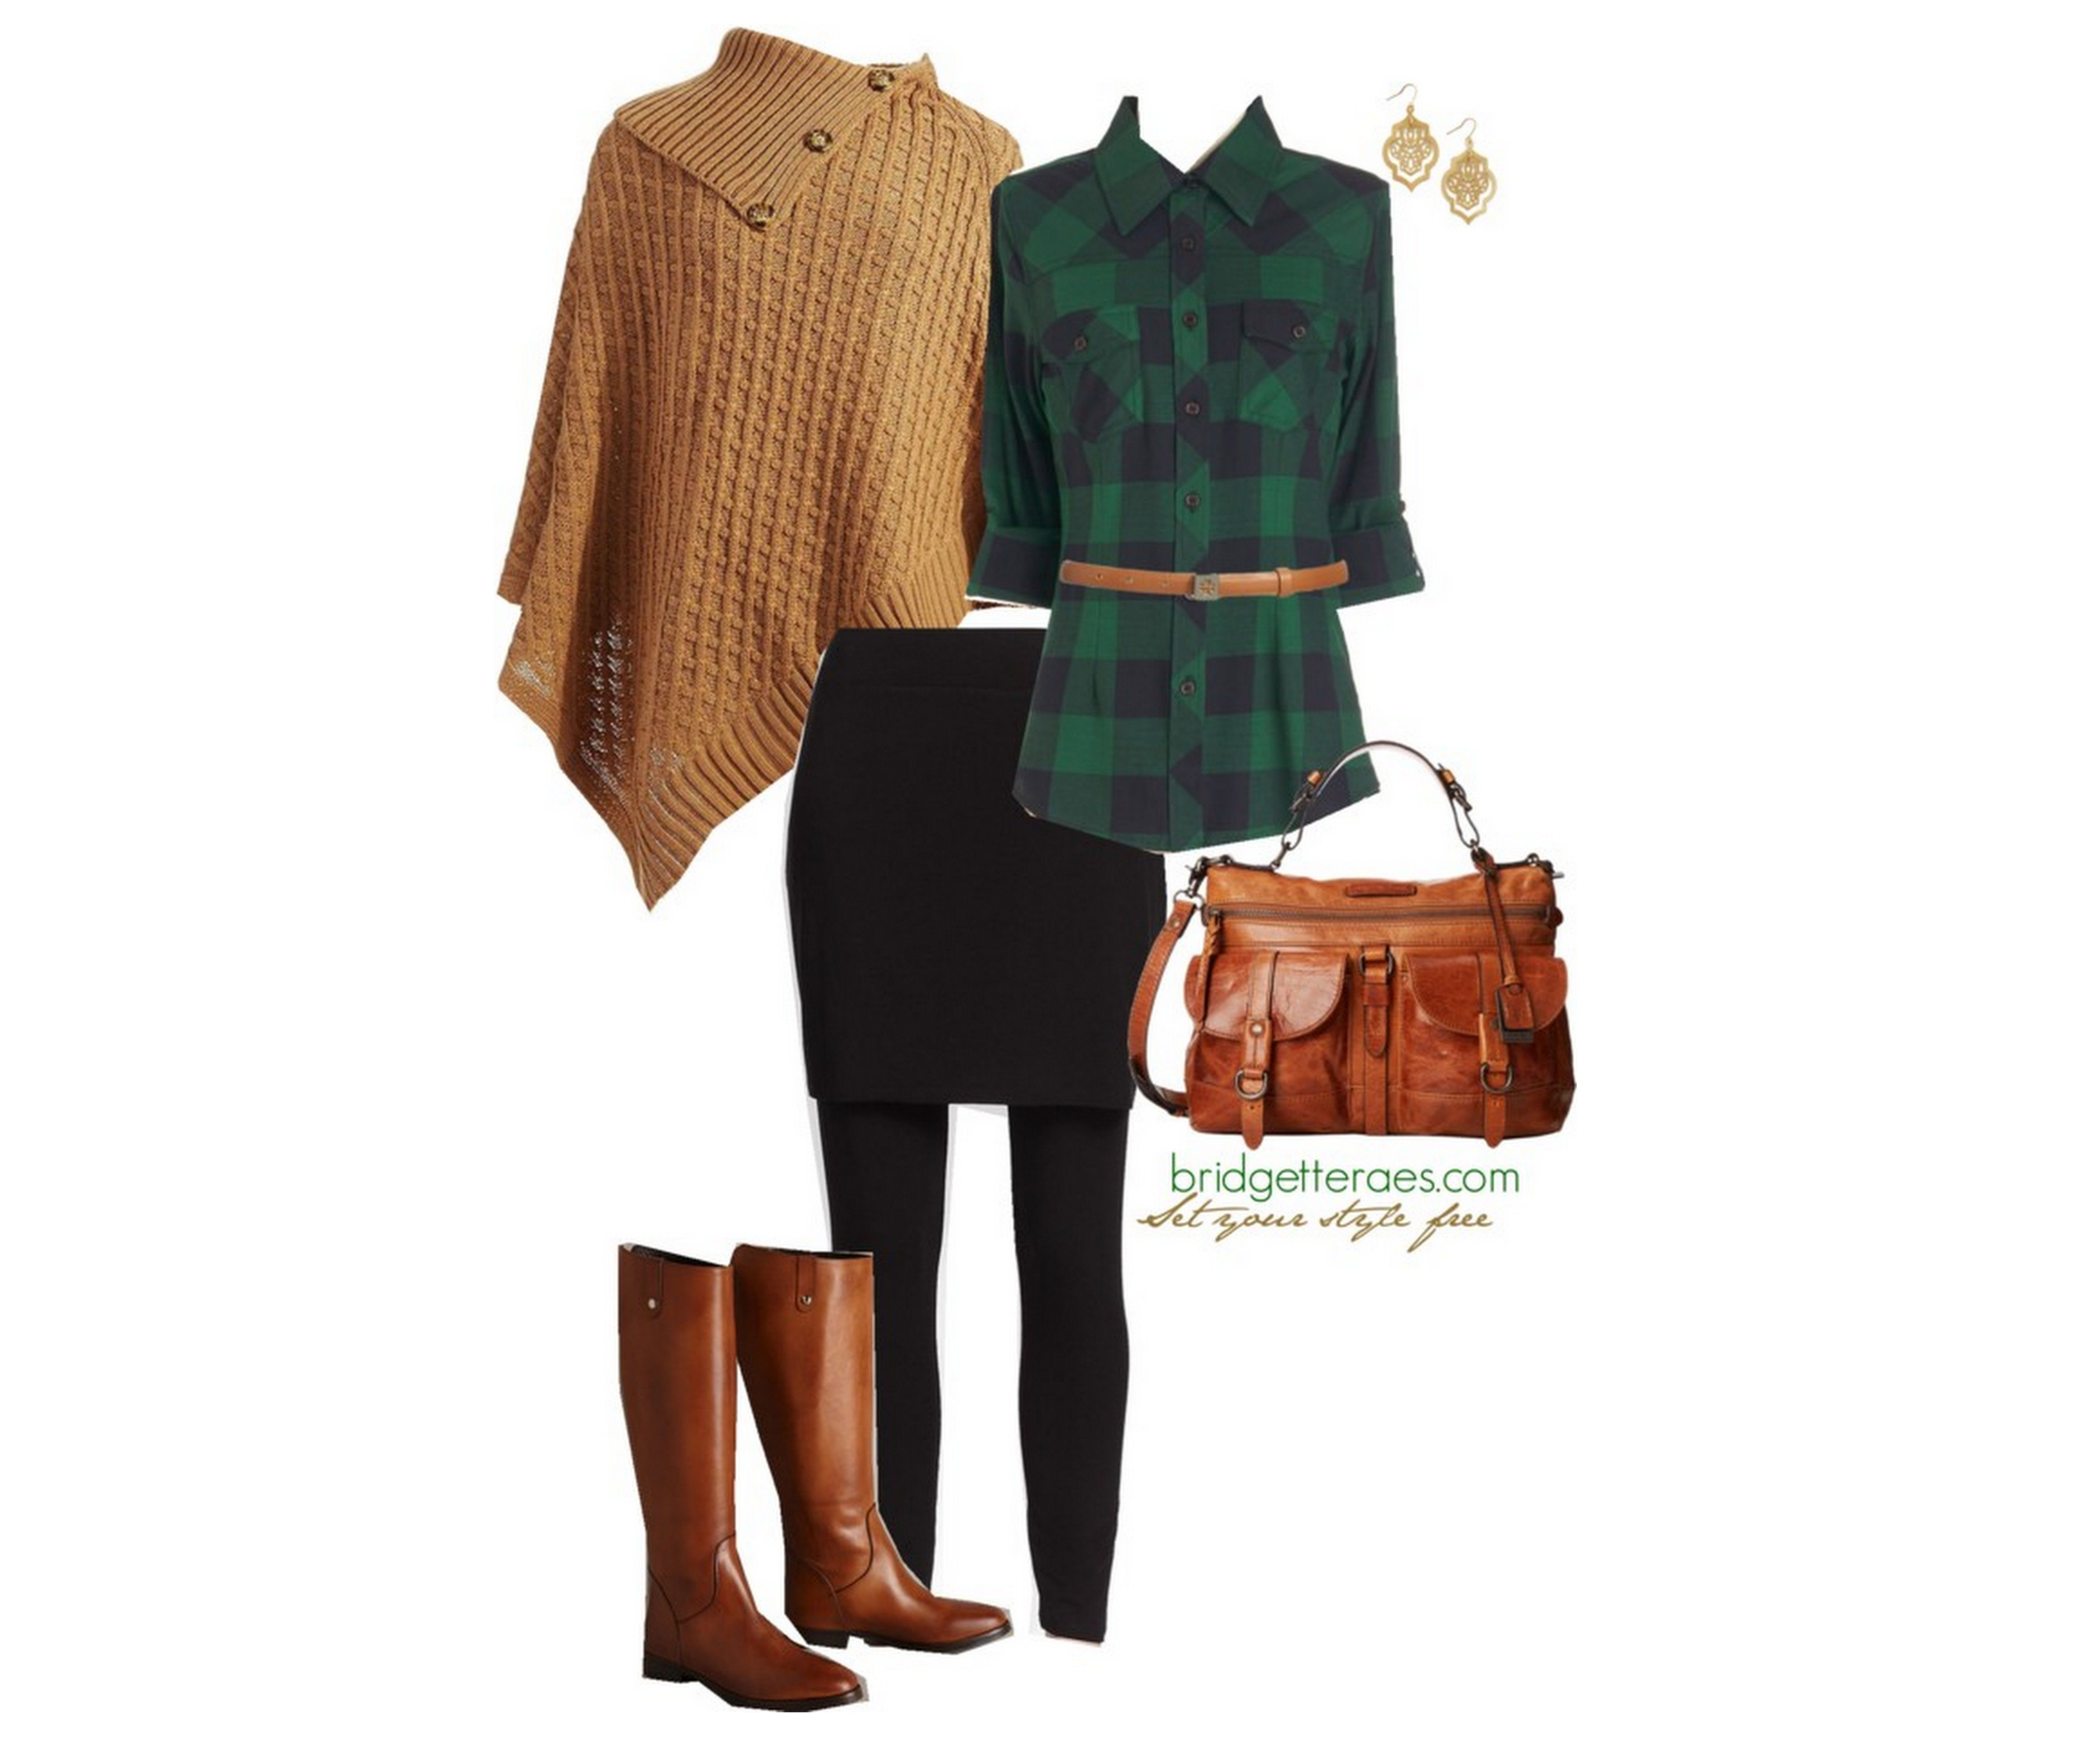 6921c4020eaee5 How to Wear Skeggings (Skirted Leggings)   Outfits   Fashion, How to ...